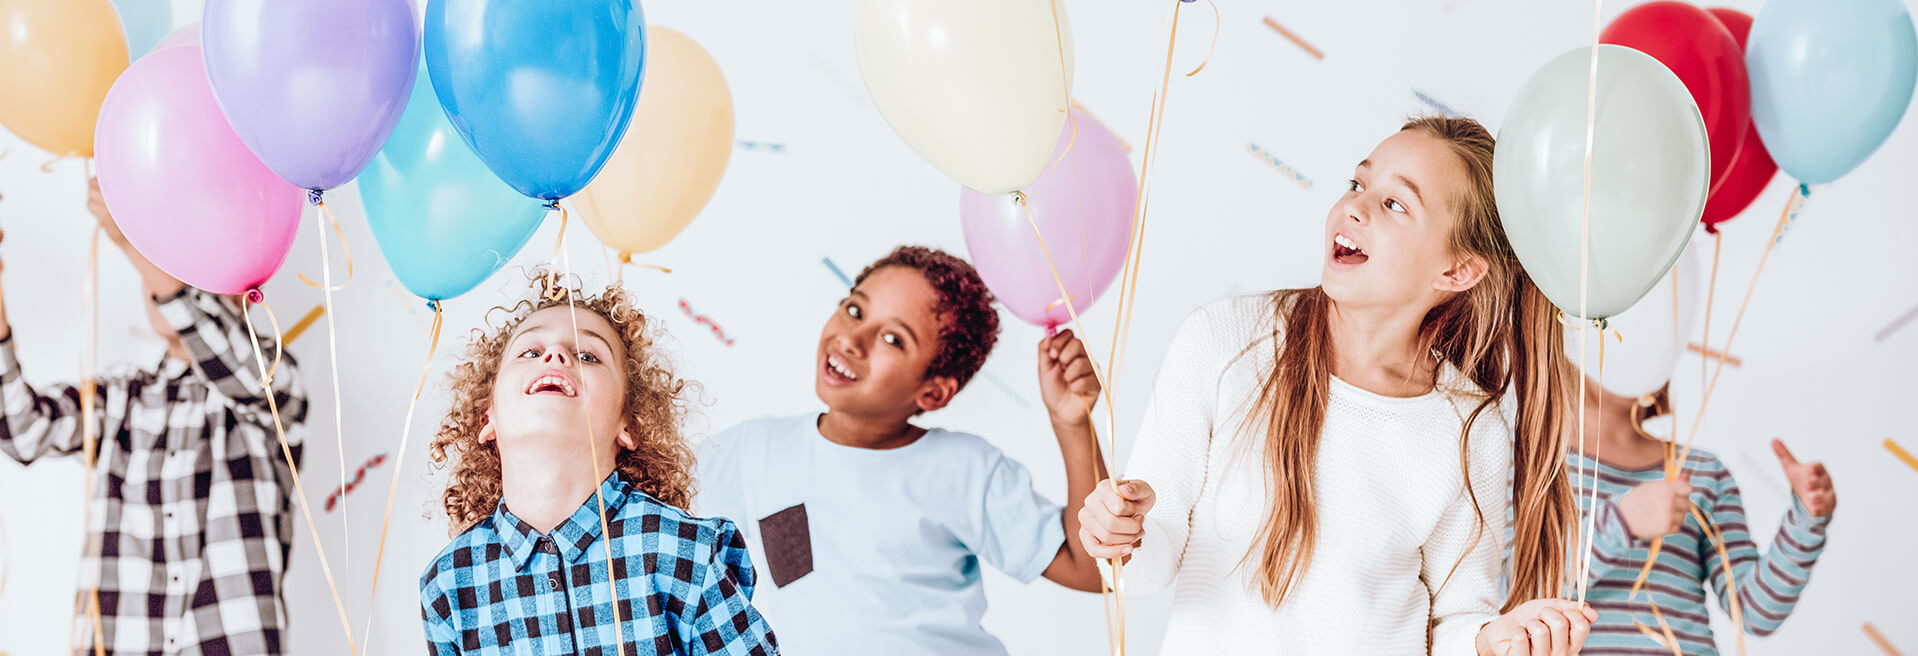 Group of kids with balloons